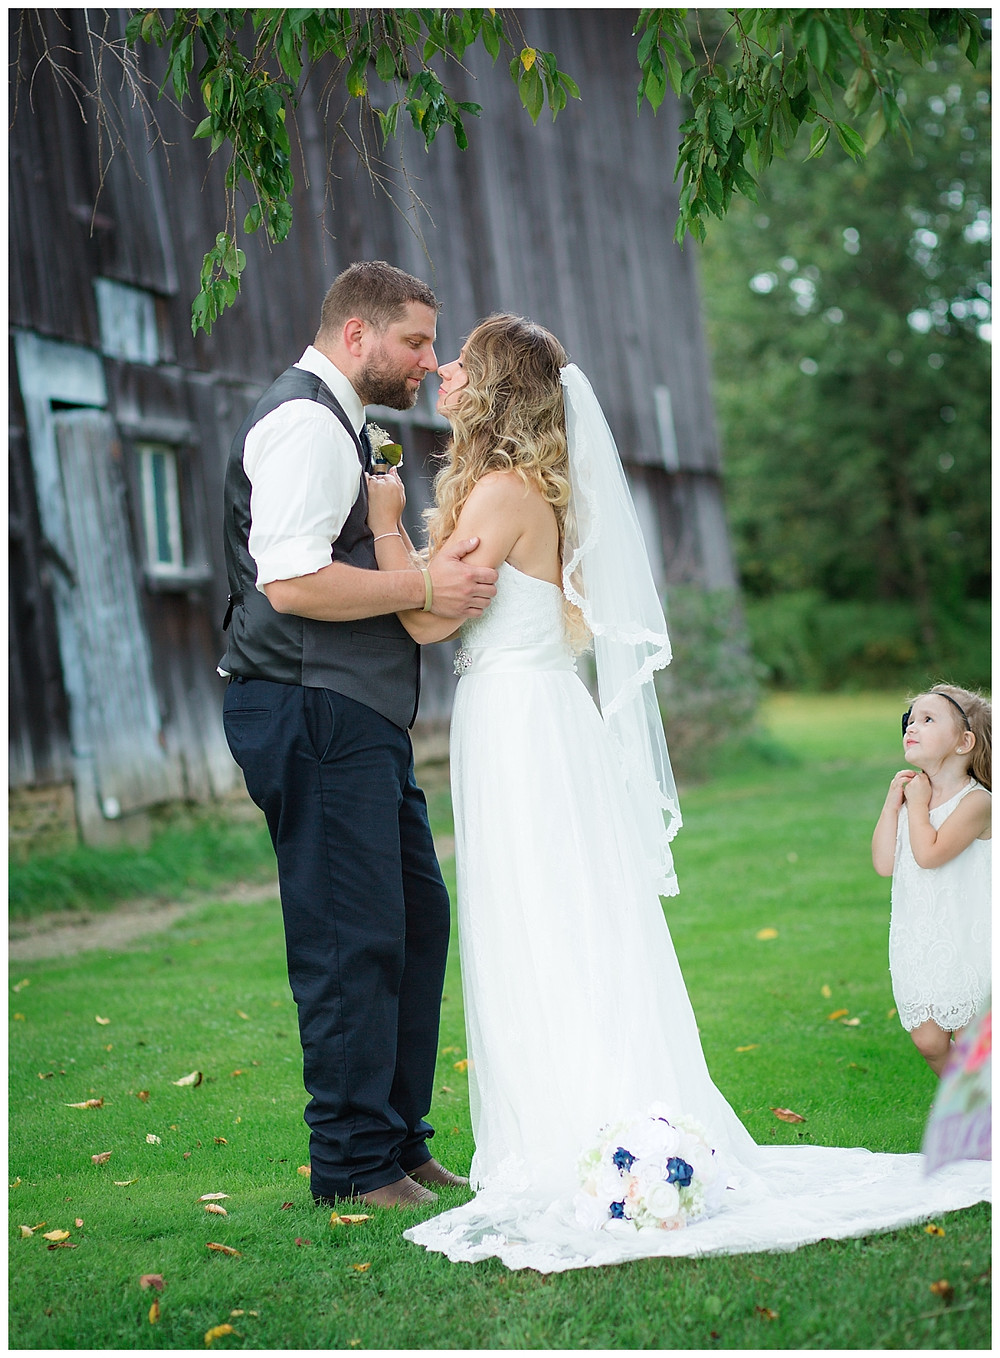 If you couldn't tell they are truly in love, you can definitely see if in the dreamy look of the flower girl watching them.